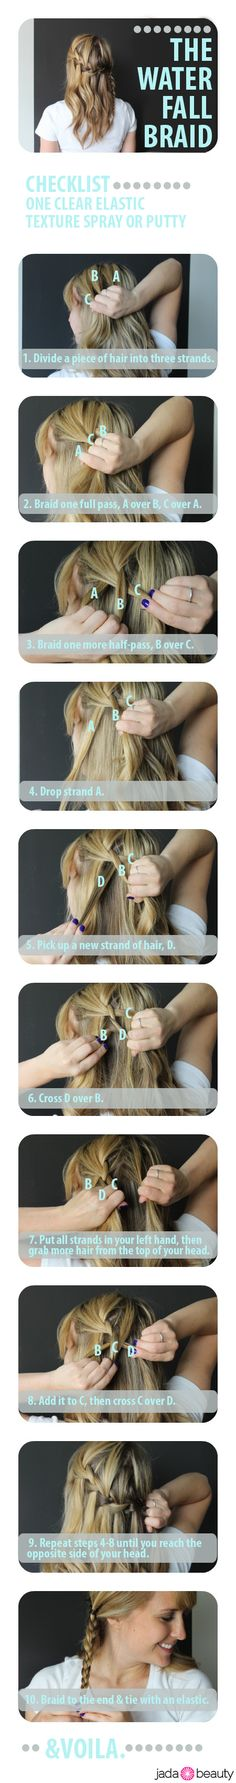 waterfall braid #hair #tutorial! pin now, try later.